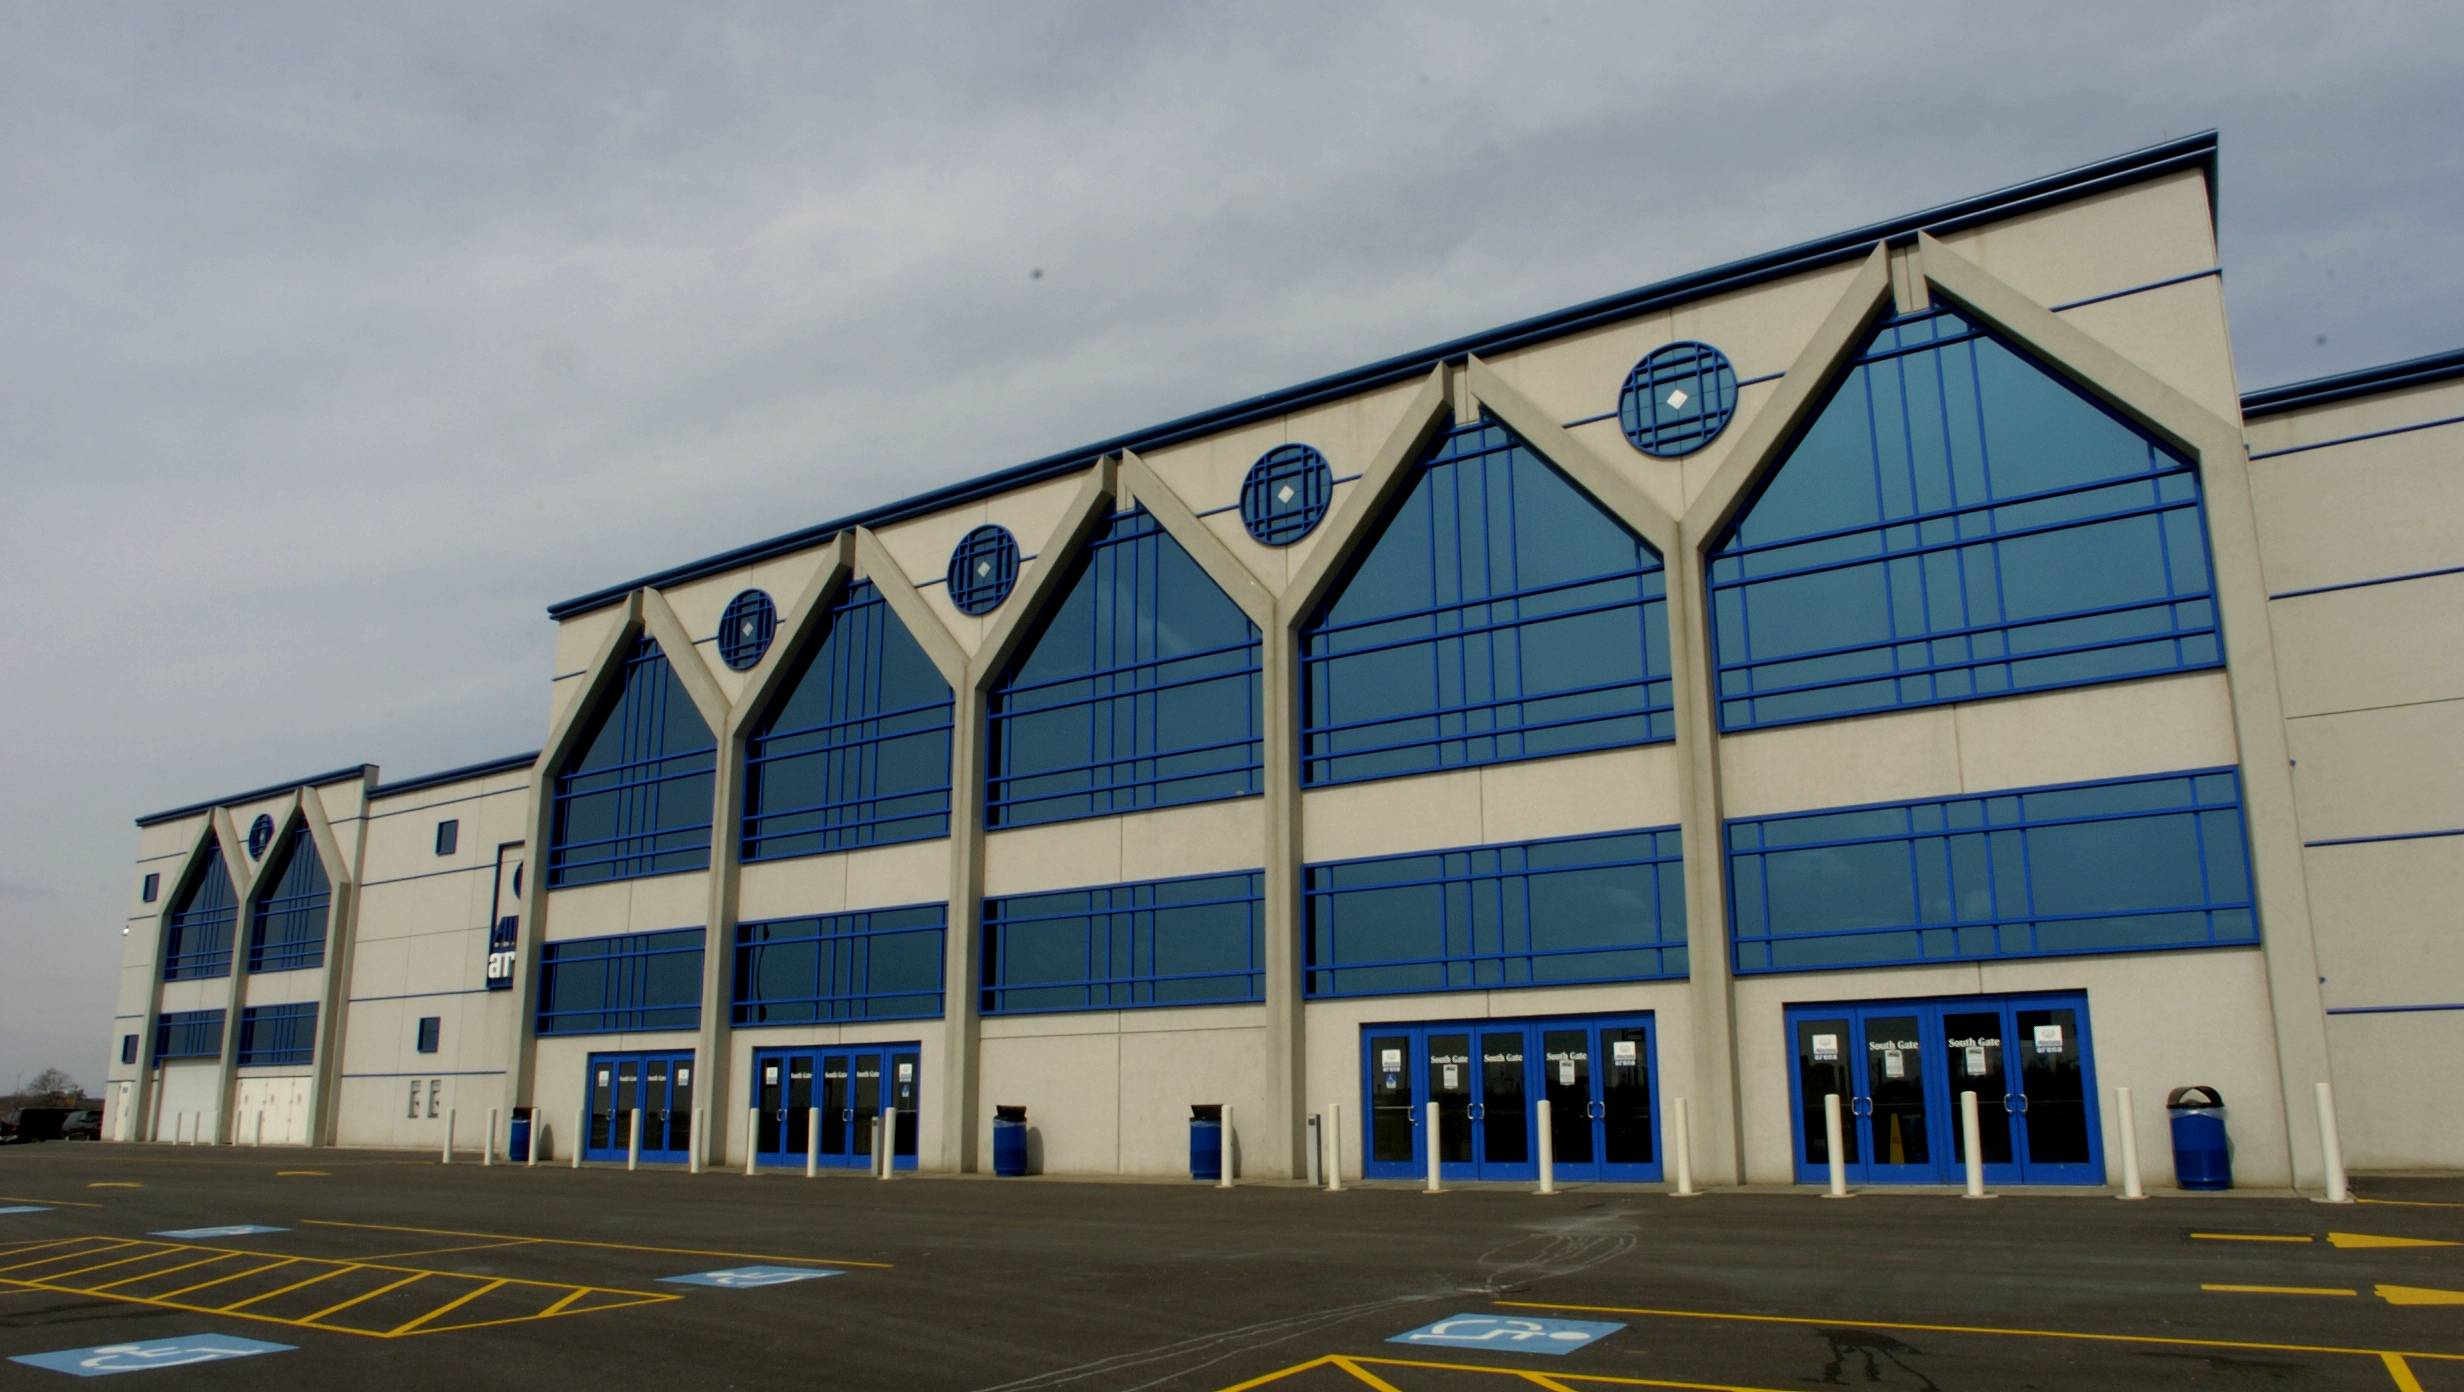 The Allstate Arena will have the same name for at least another 10 years, under a naming rights agreement approved by the village of Rosemont this week. The deal is worth $15 million over 10 years.